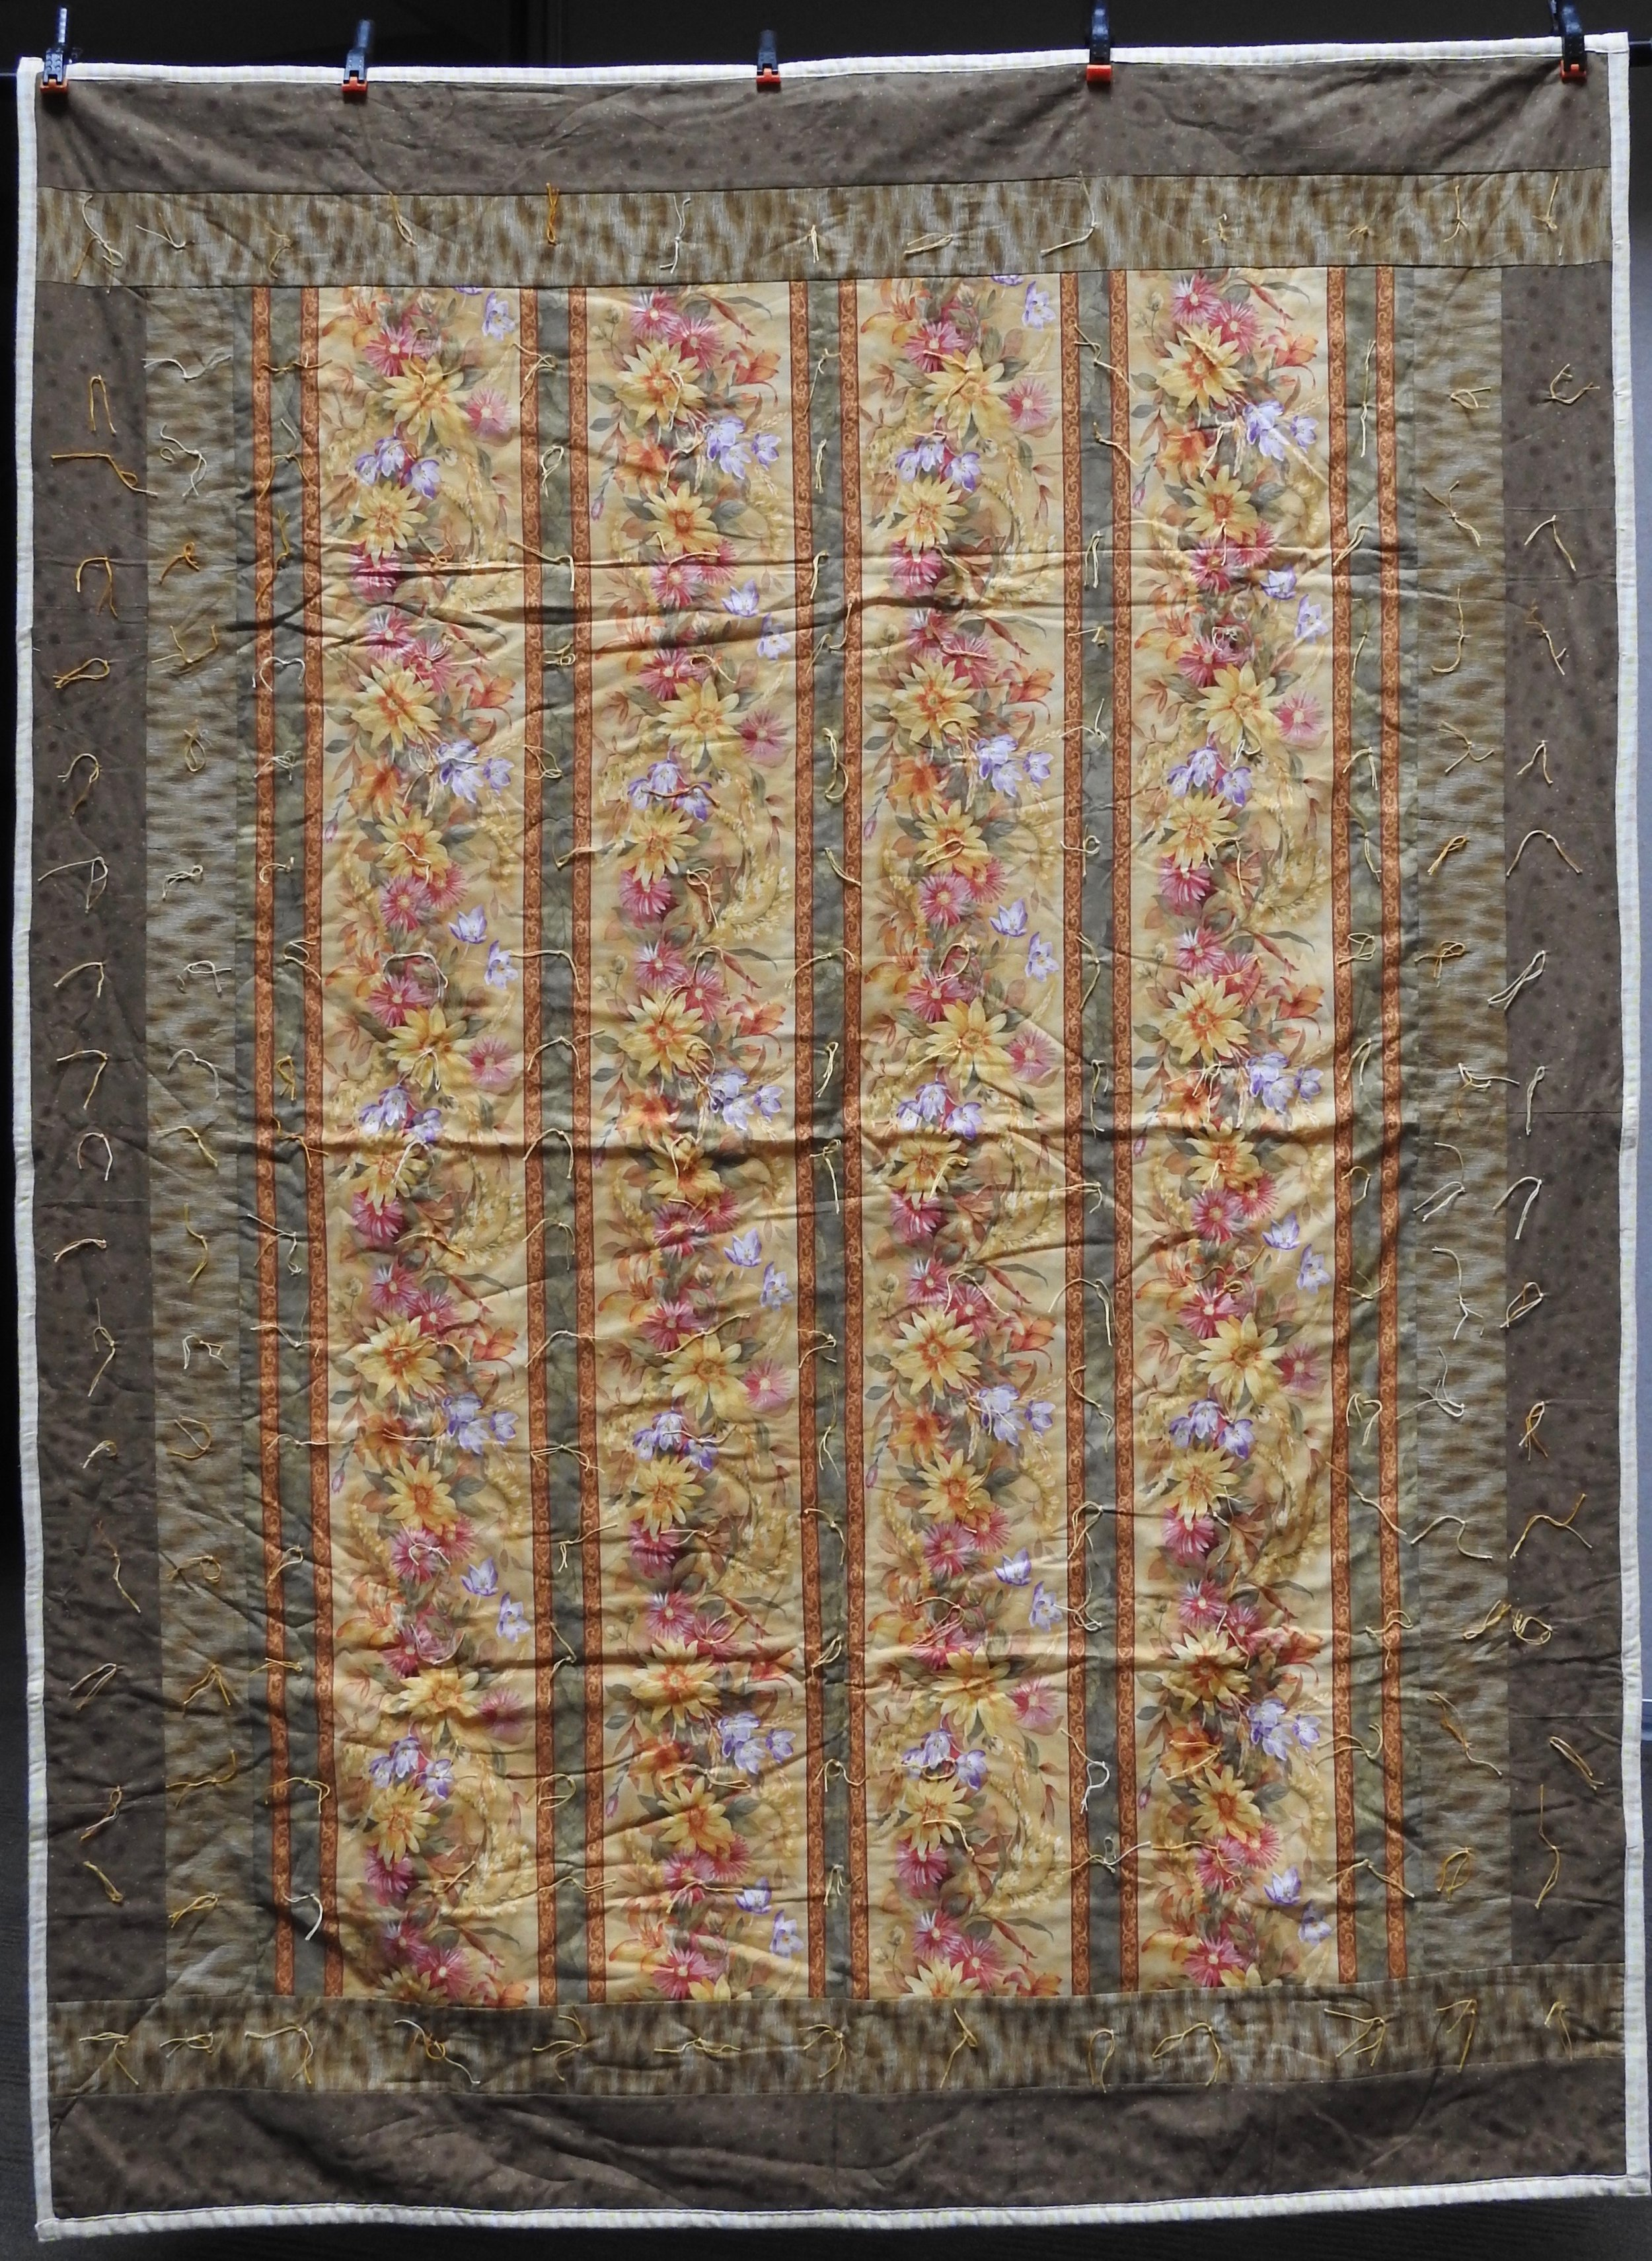 Summer Flowers Comforter, Pieced & Knotted, donated by Howard-Miami Mennonite Church, 60 x 80""